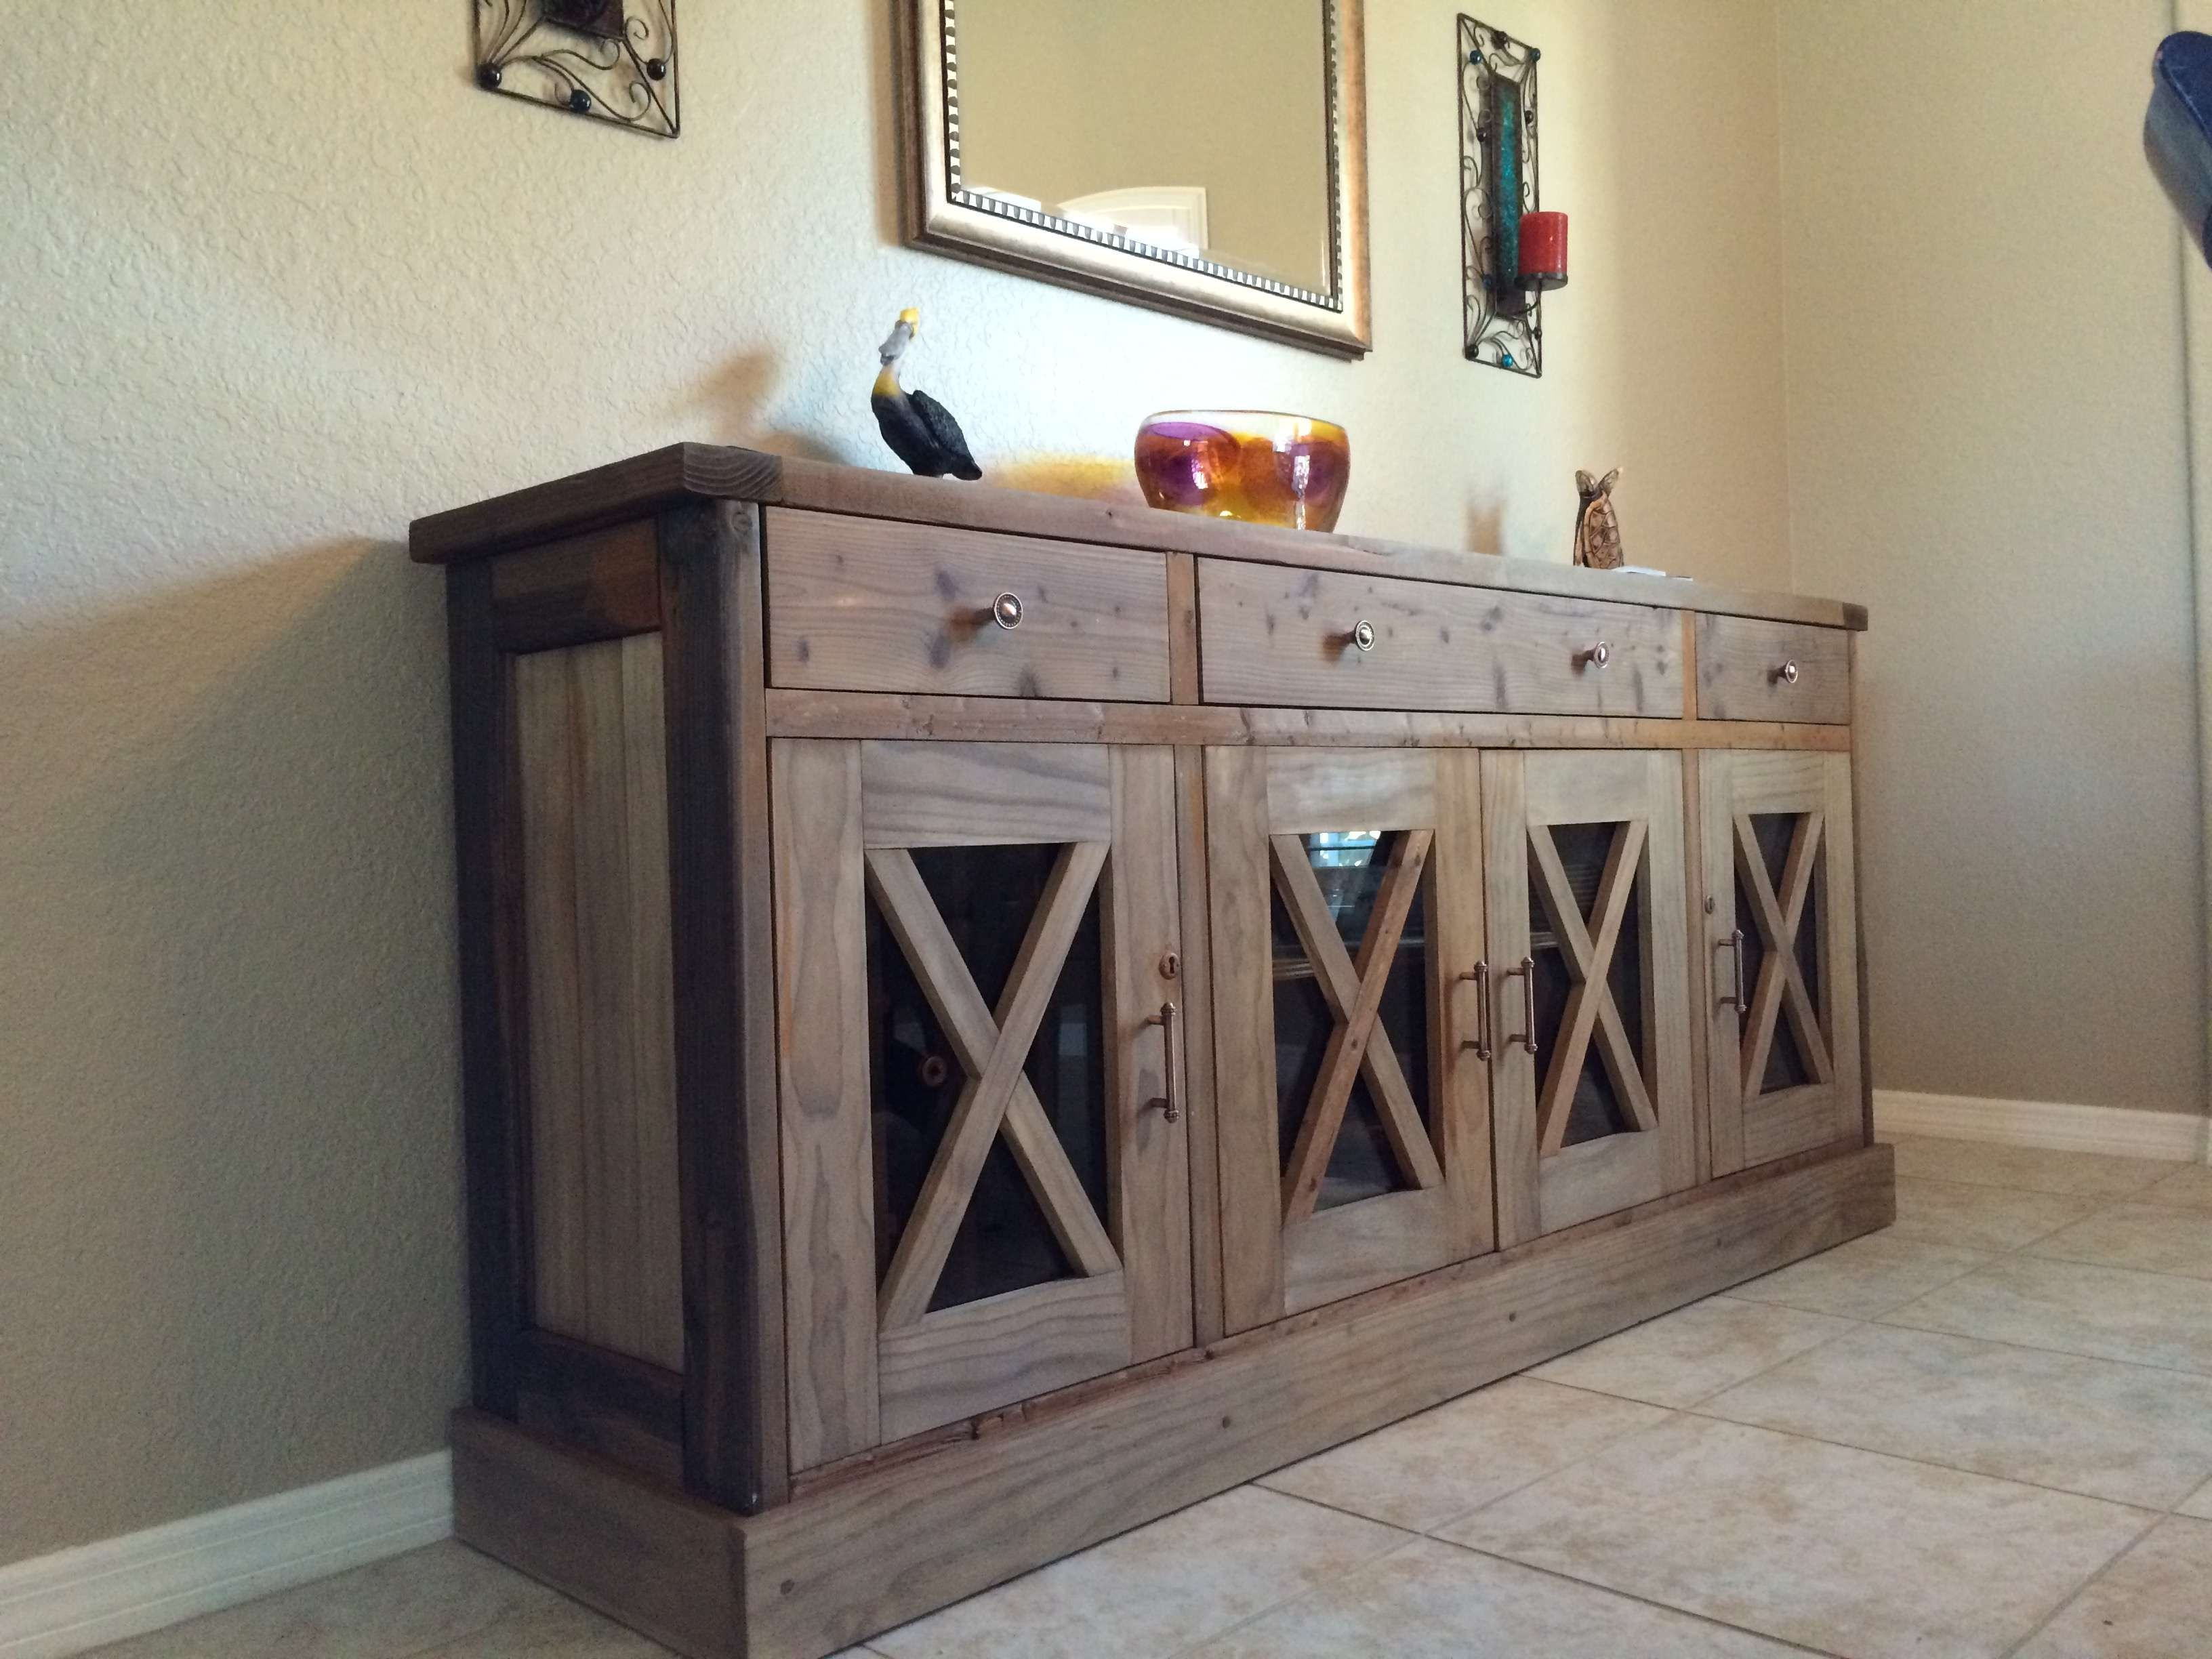 Ana White | Dining Room Sideboard – Diy Projects Throughout Diy Sideboards (Gallery 5 of 20)